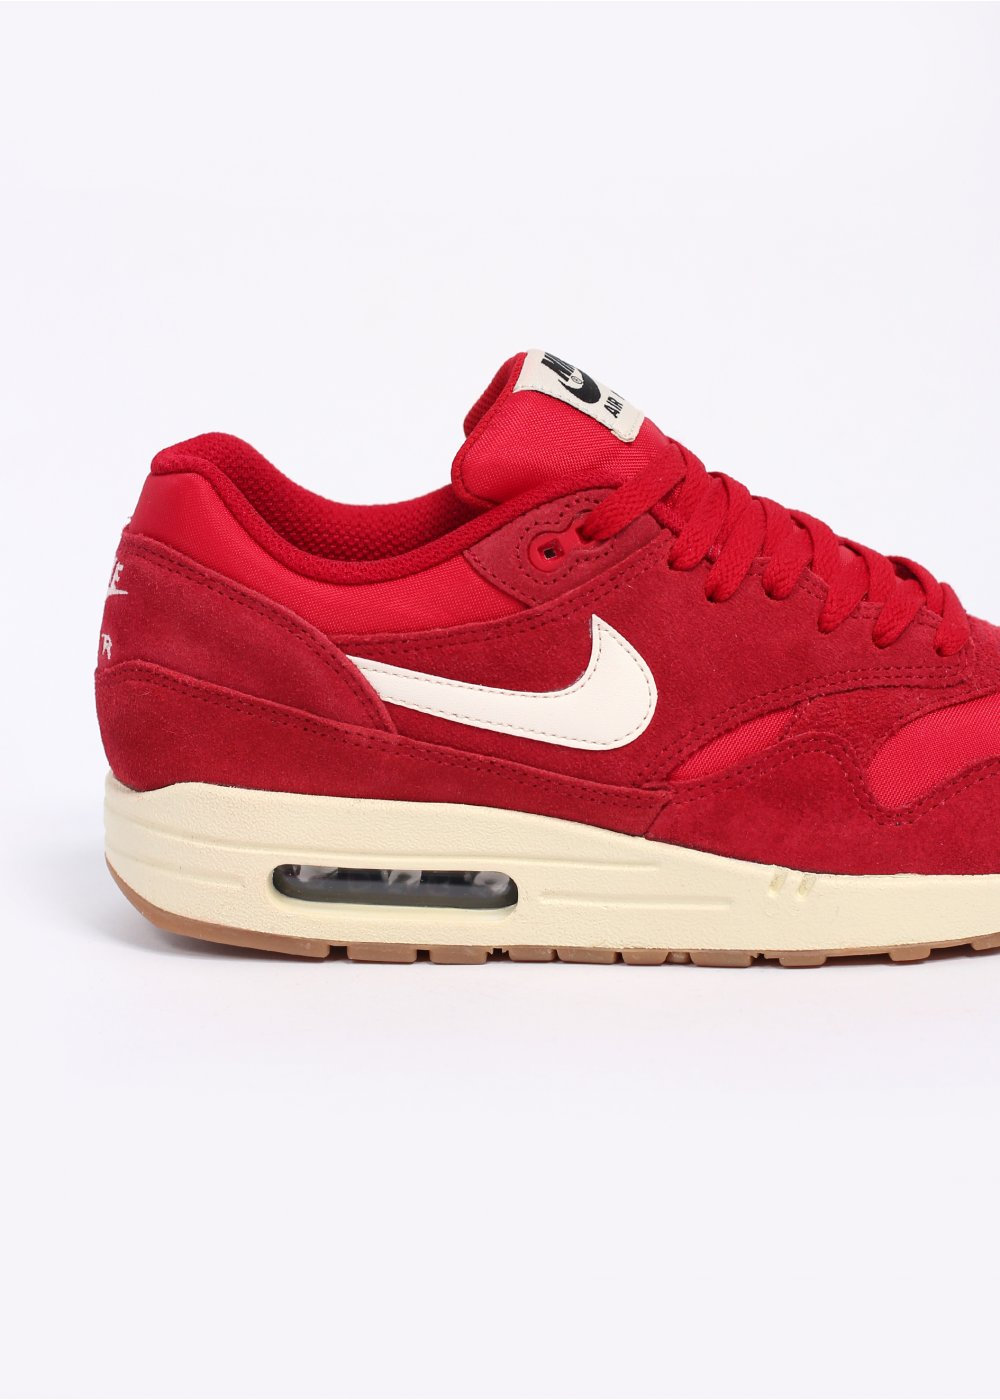 56d18e94a5 Nike Air Max 1 Essential - Gym Red / Sail / Black